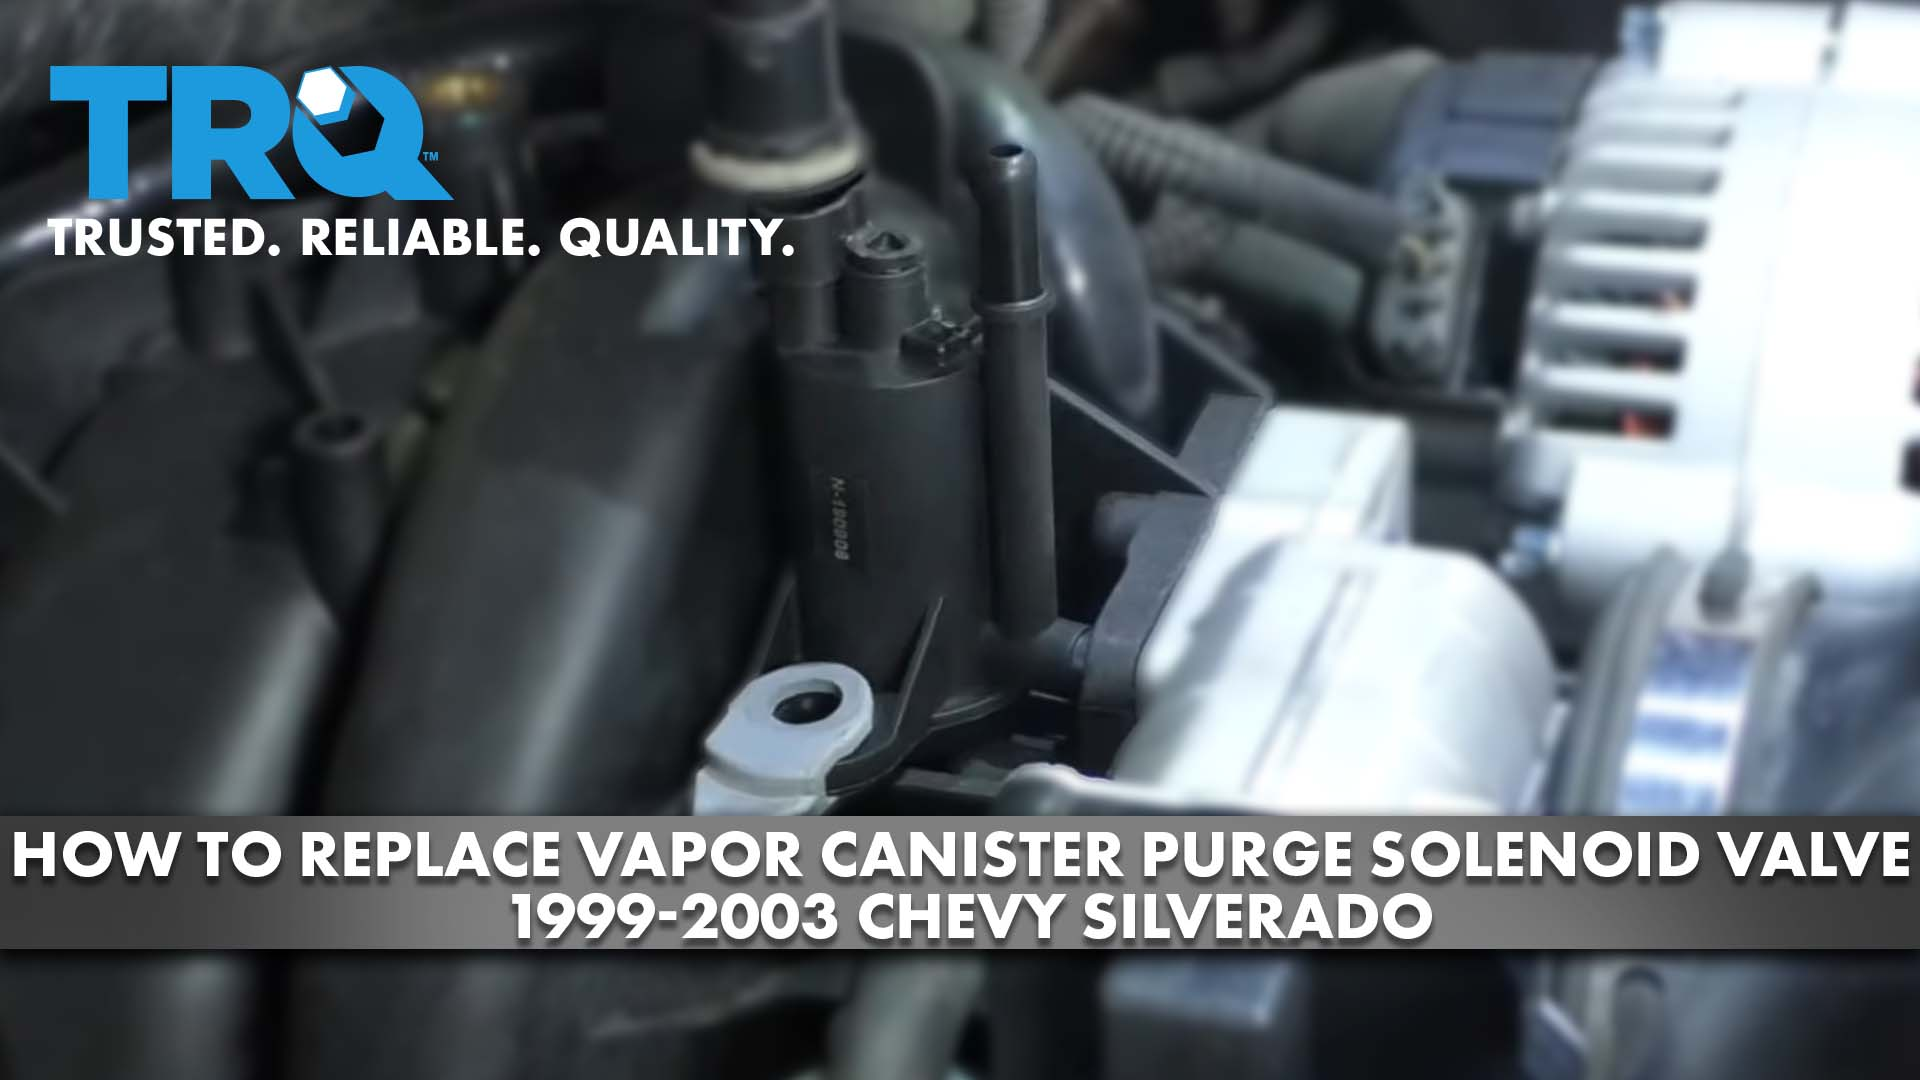 How to Replace Vapor Canister Purge Solenoid Valve 1999-03 Chevy Silverado